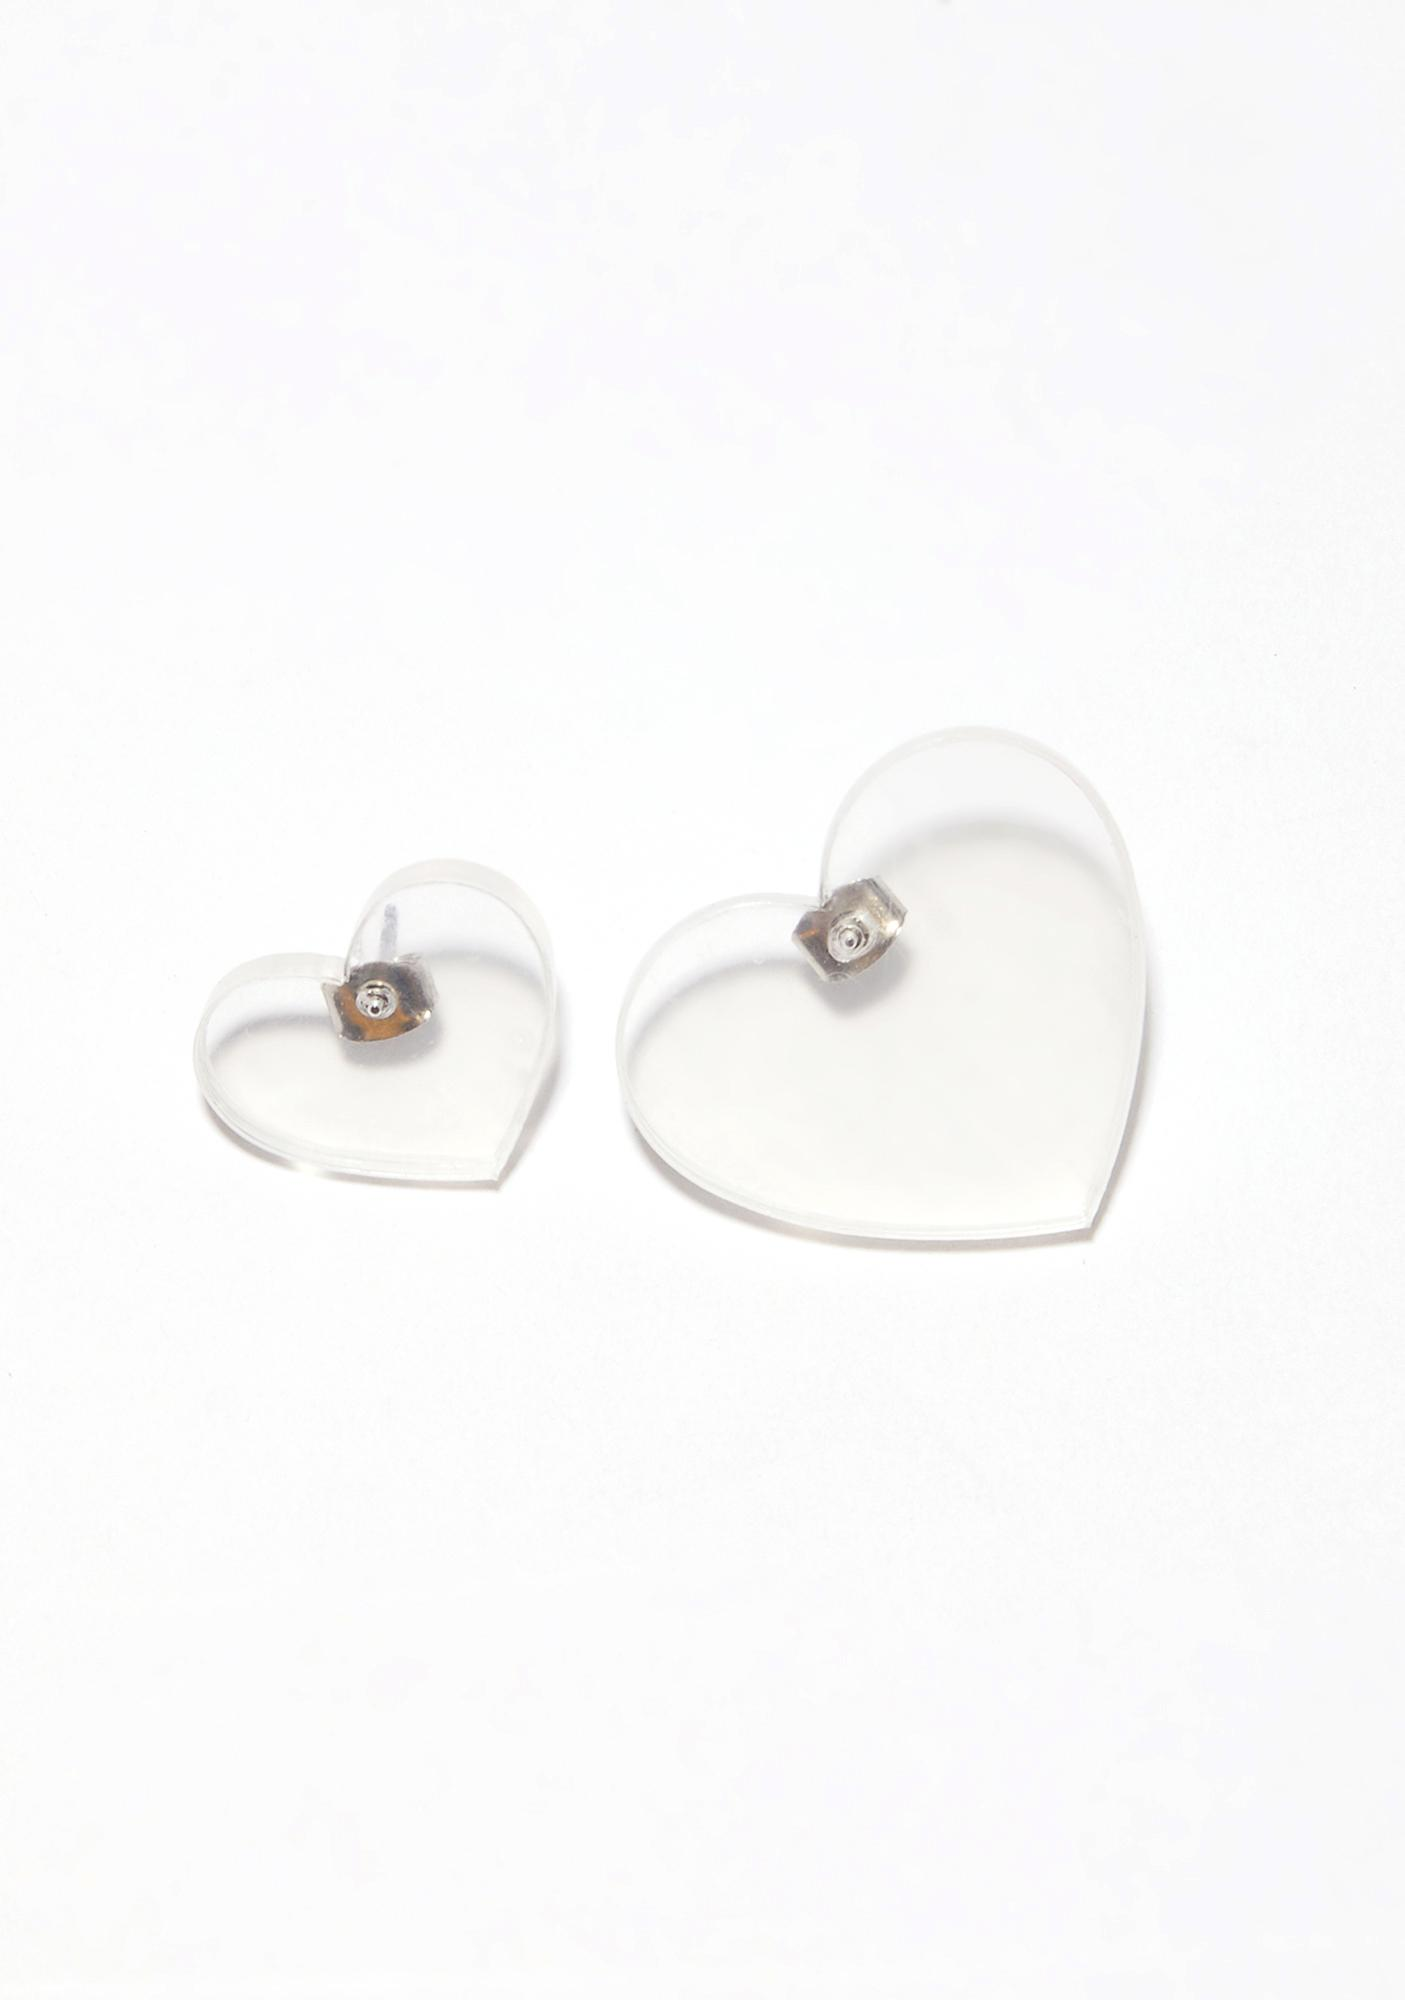 E.M. leg stud earrings - Metallic RNnnu